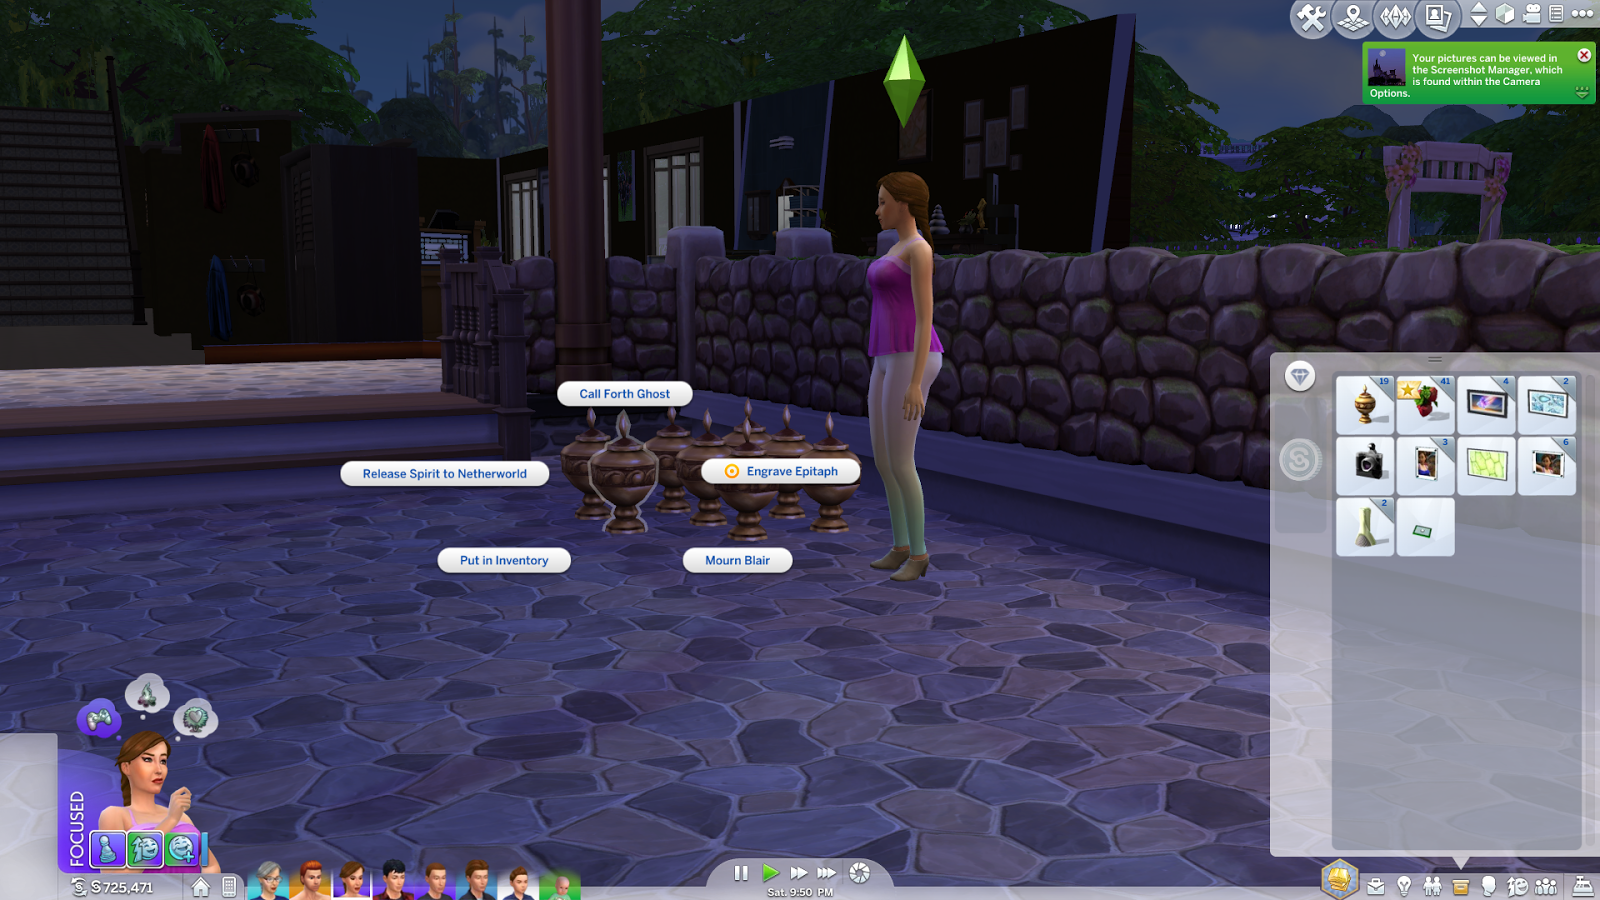 Kluenii's Sims 4 Legacy Family: Tombstone Recovery